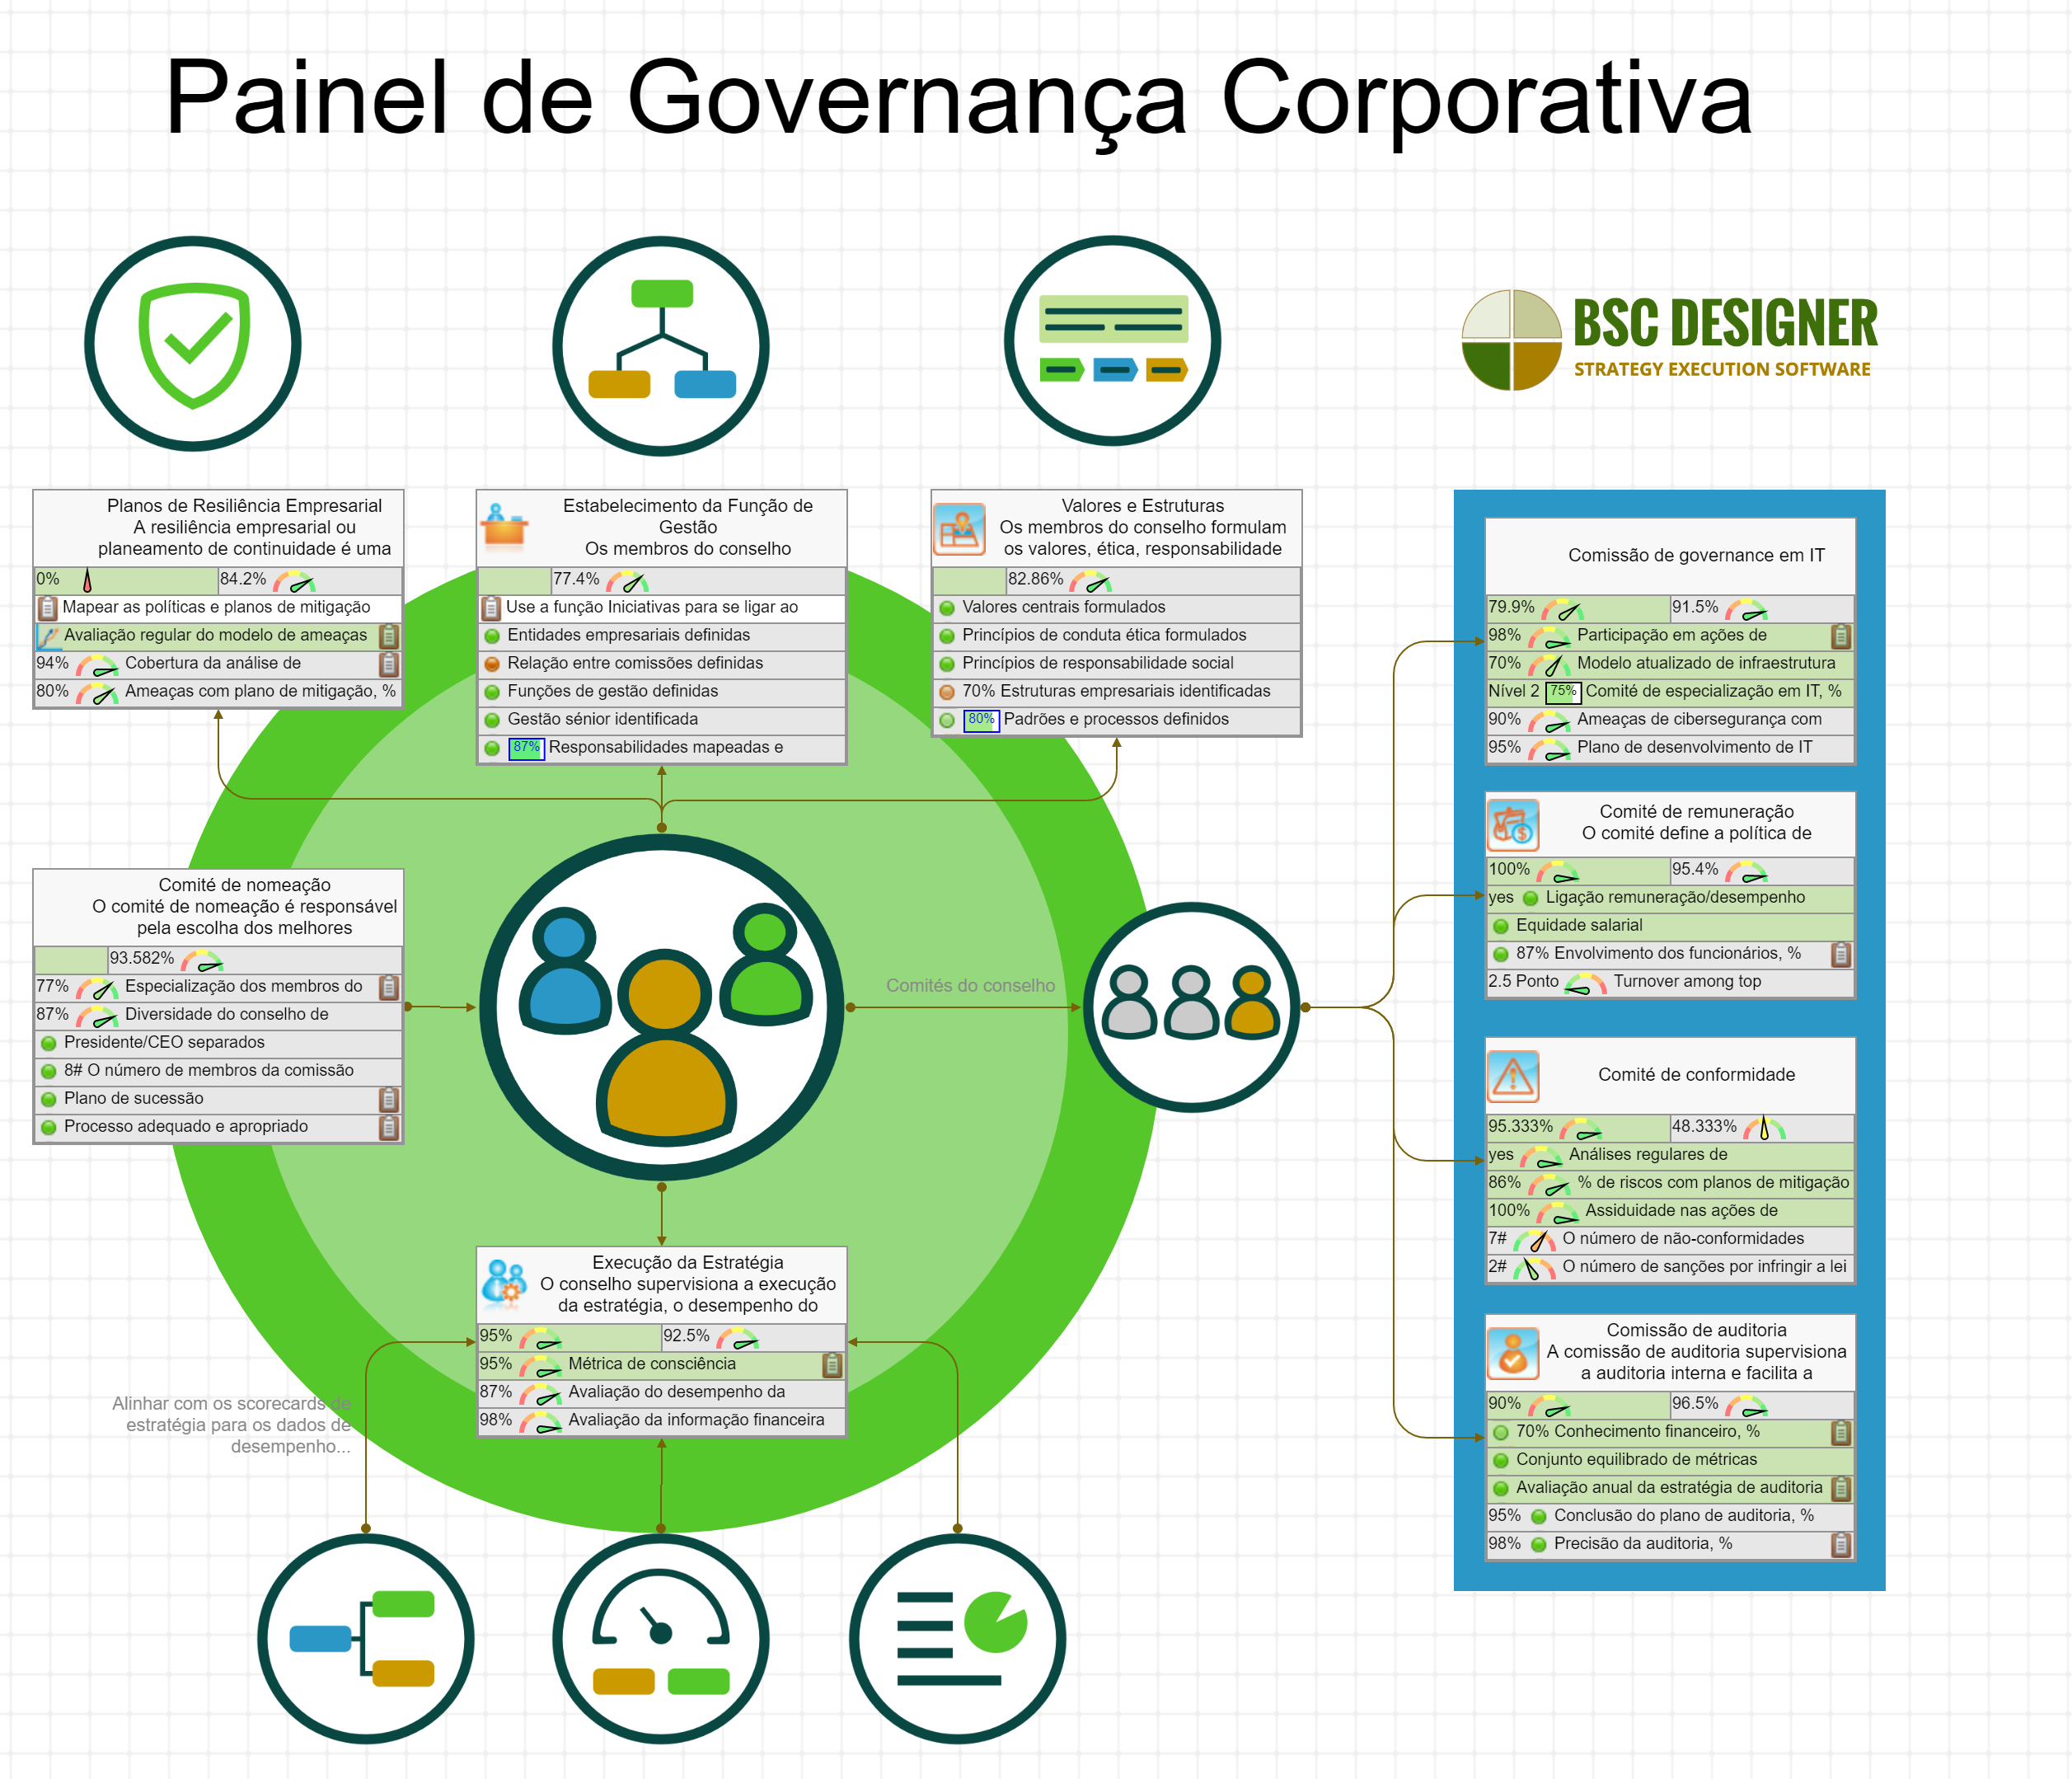 Dashboard de Governança Corporativa com KPIs